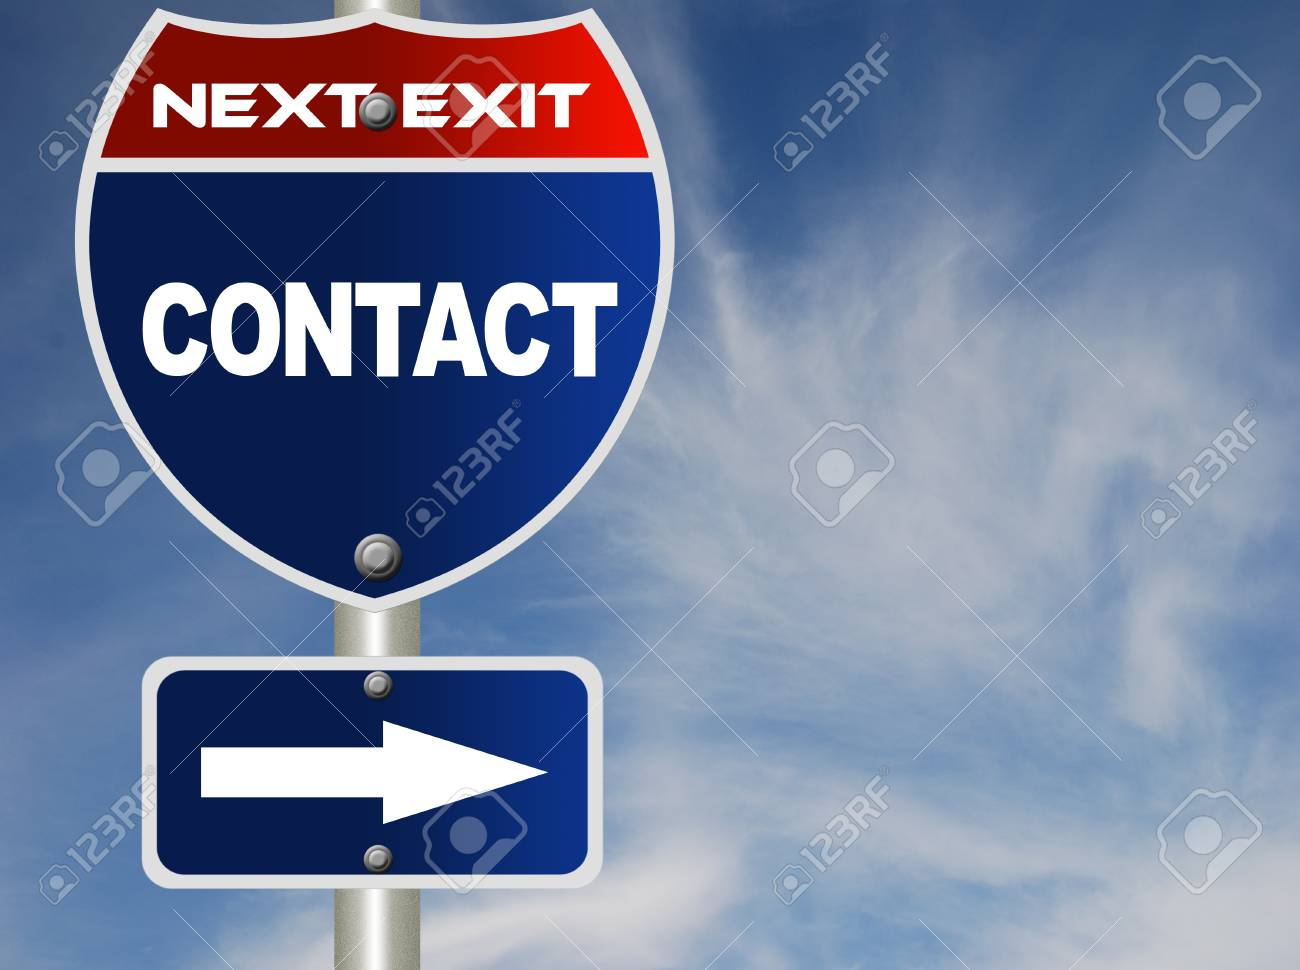 Contact road sign Stock Photo - 8486149